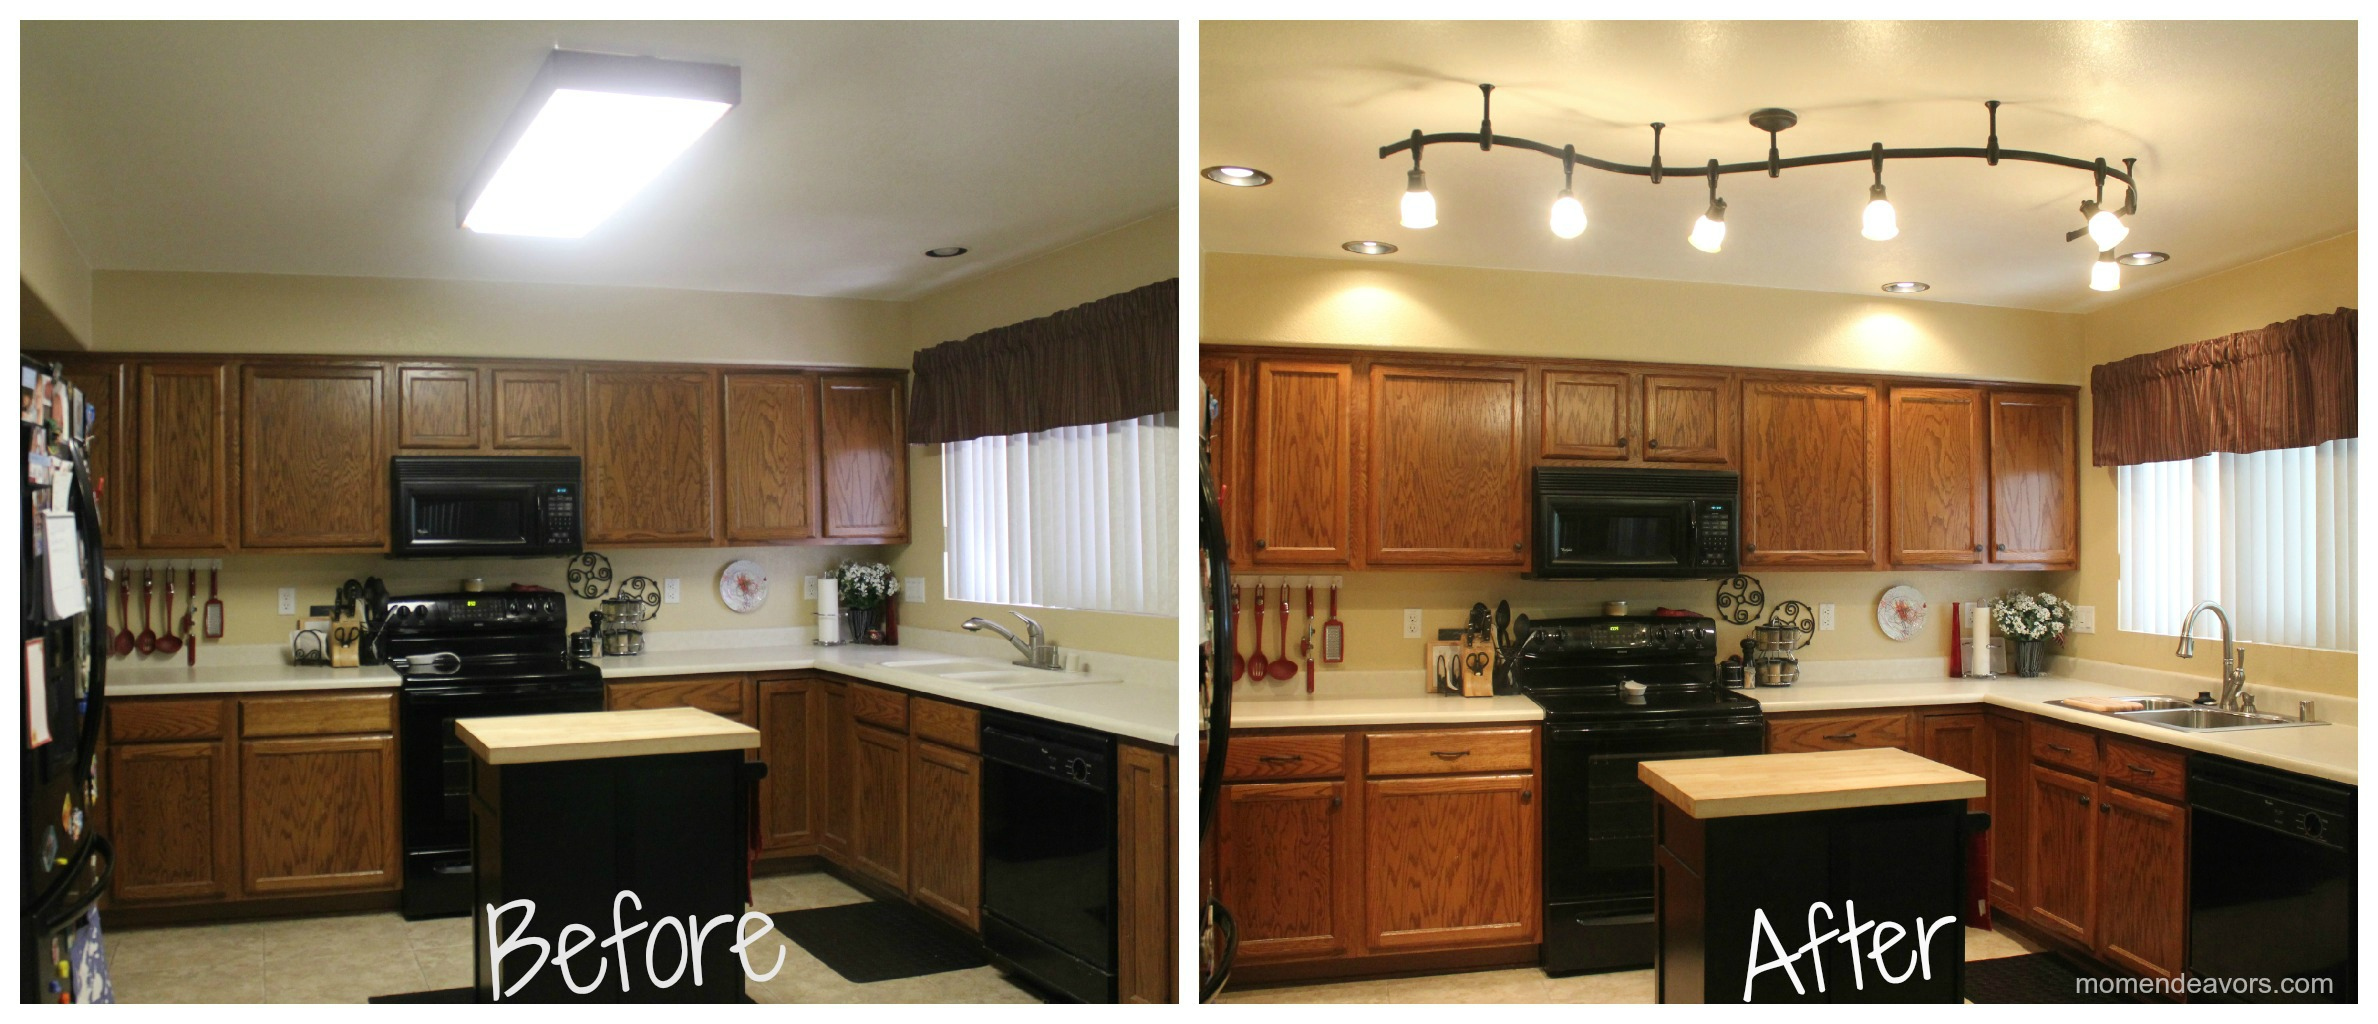 Mini kitchen remodel new lighting makes a world of for Kitchen remodel ideas